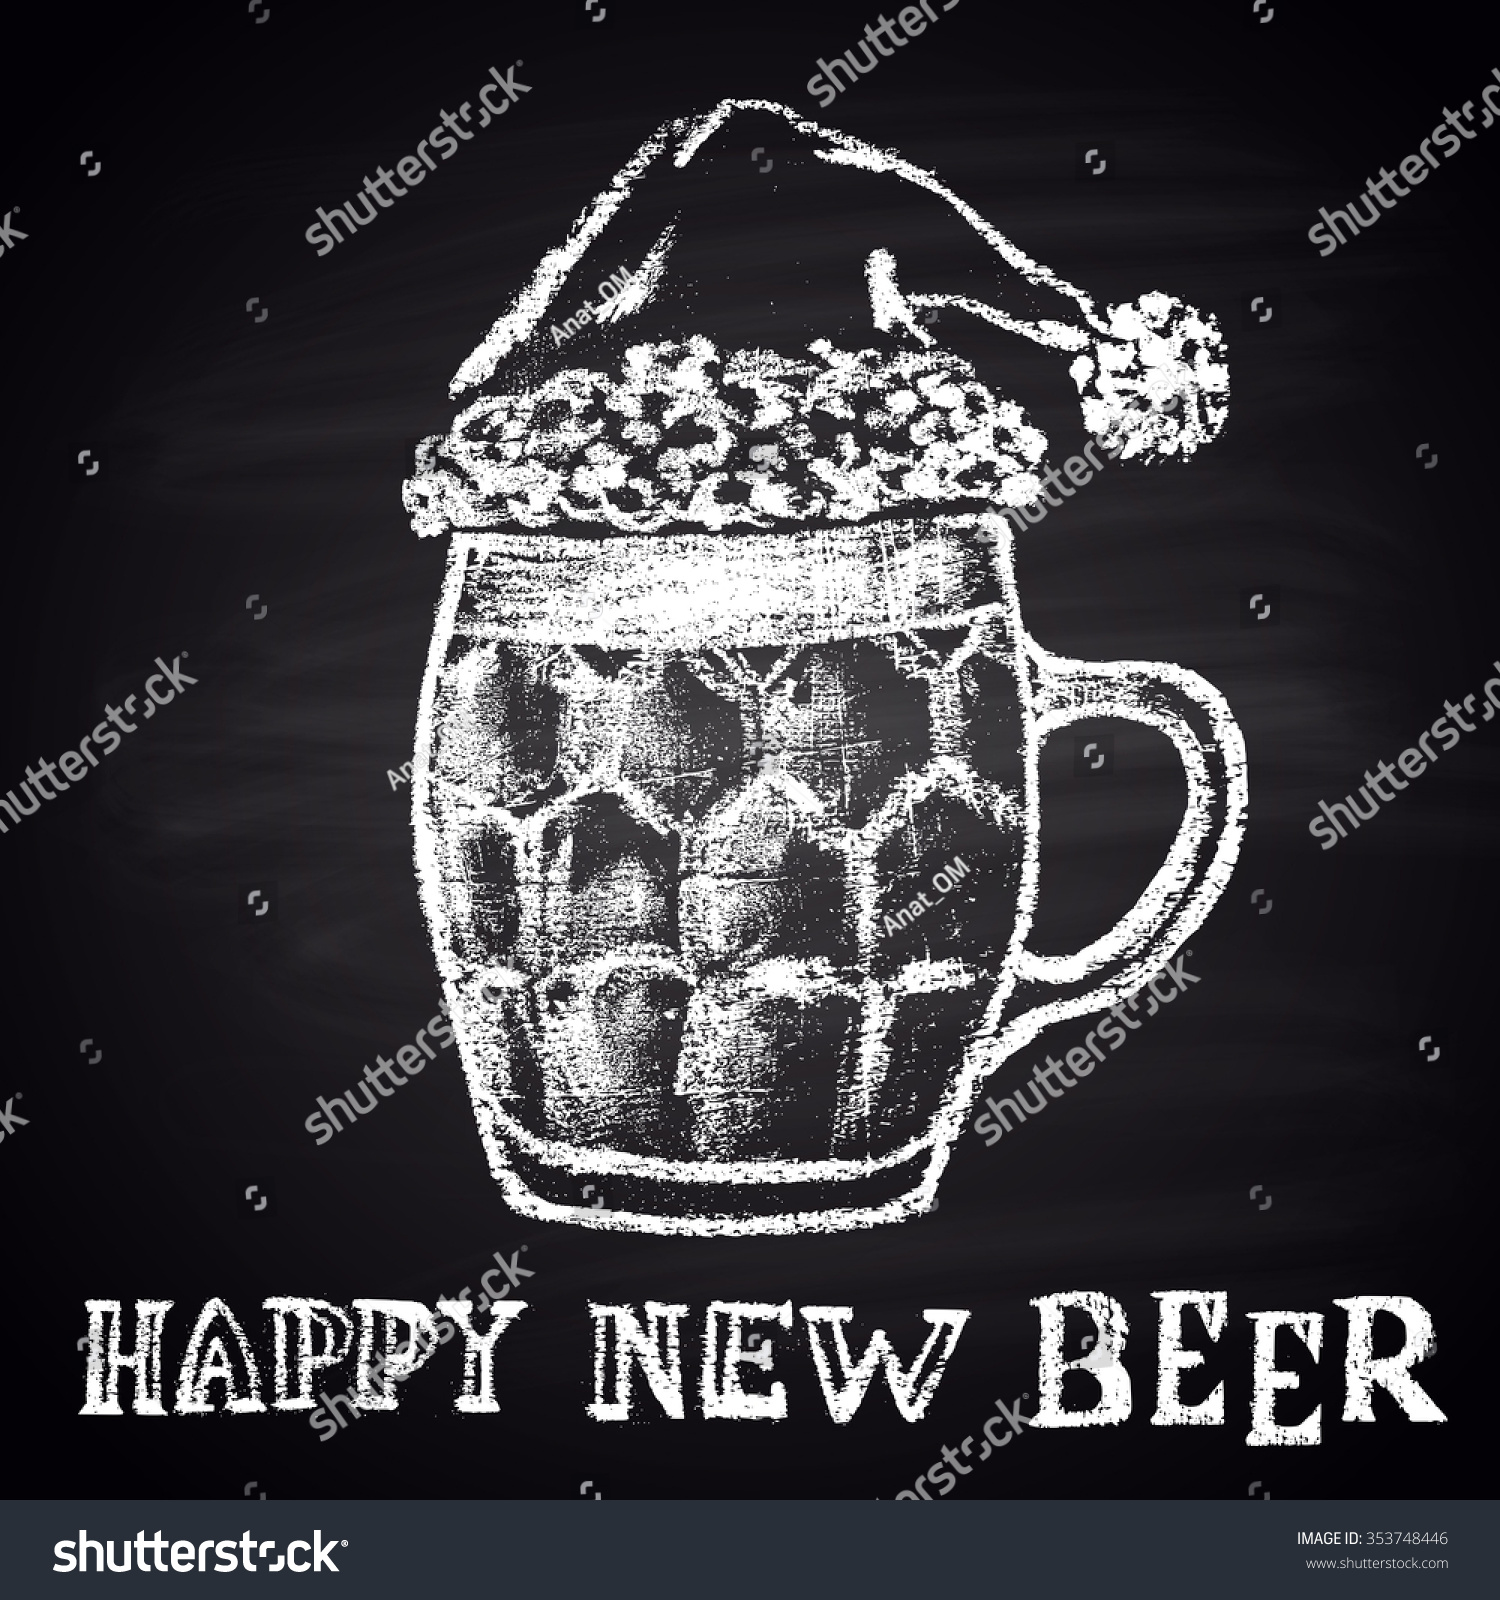 Chalk Drawn Original Illustration For Merry Christmas And Happy New Year With Beer Mug Winter